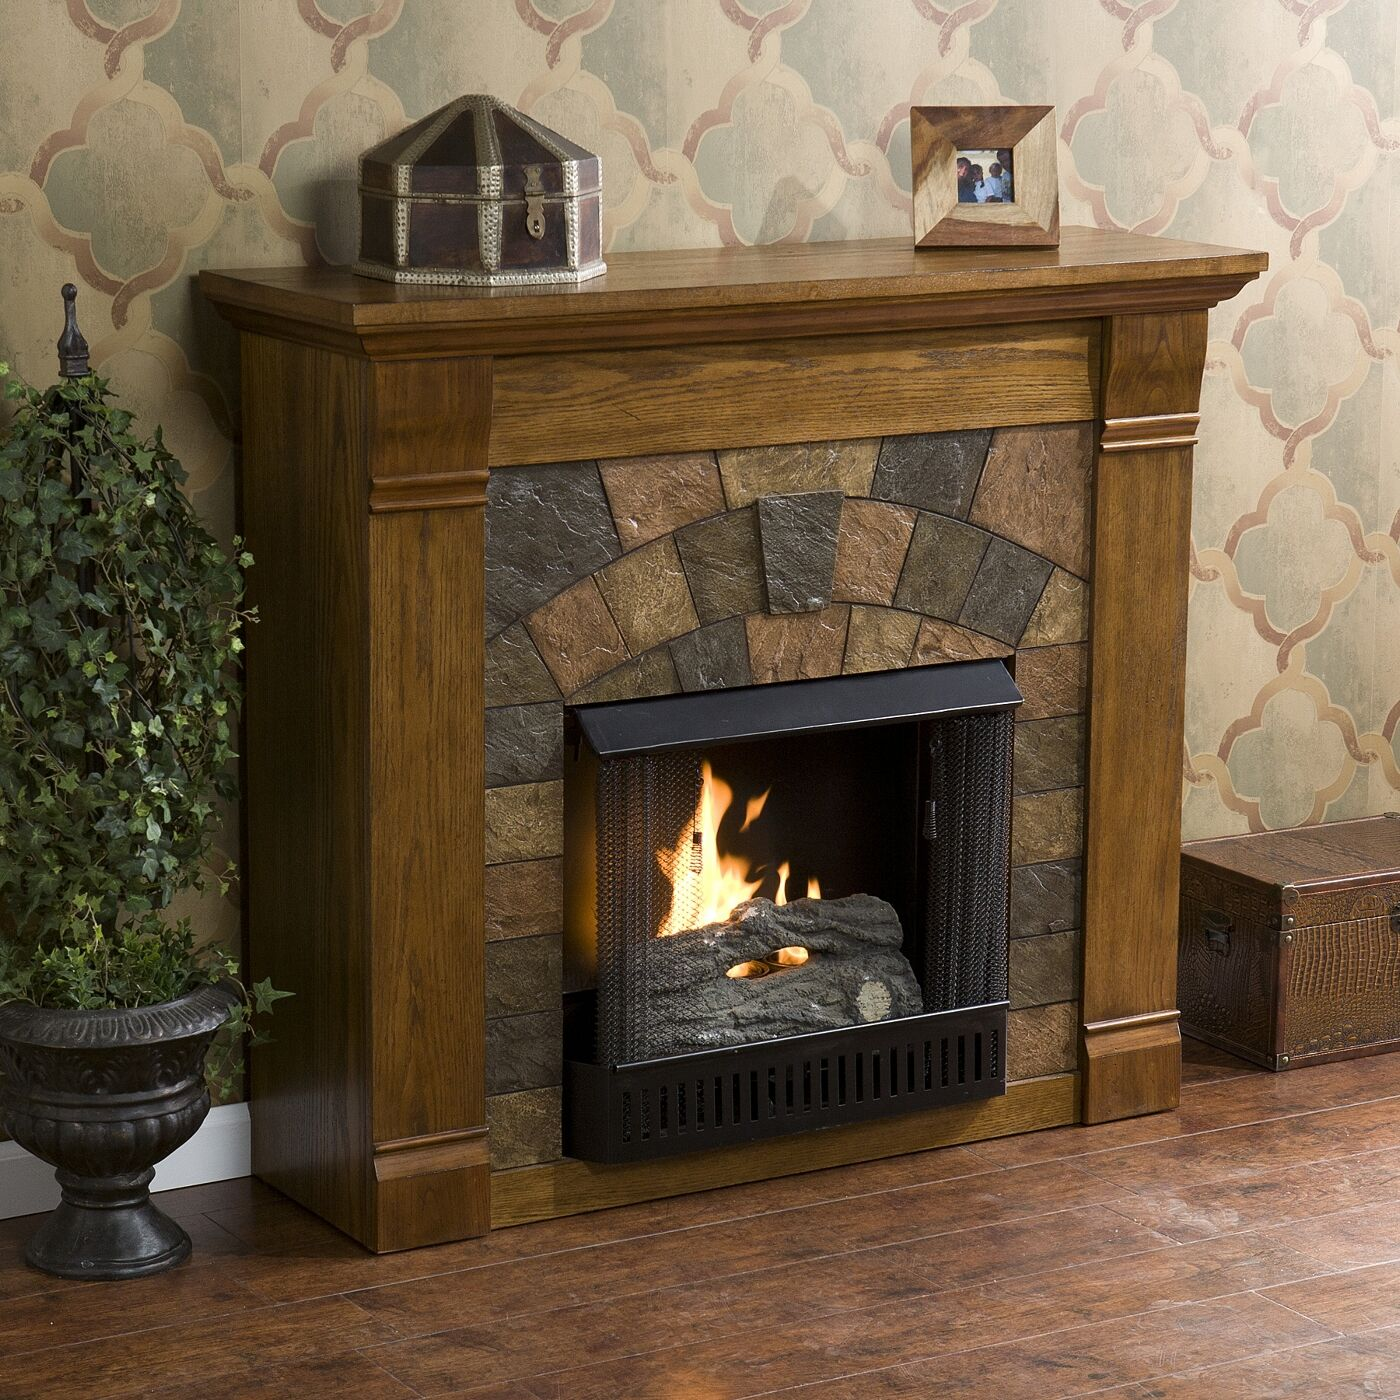 Antique Mantelpiece Buying Guide